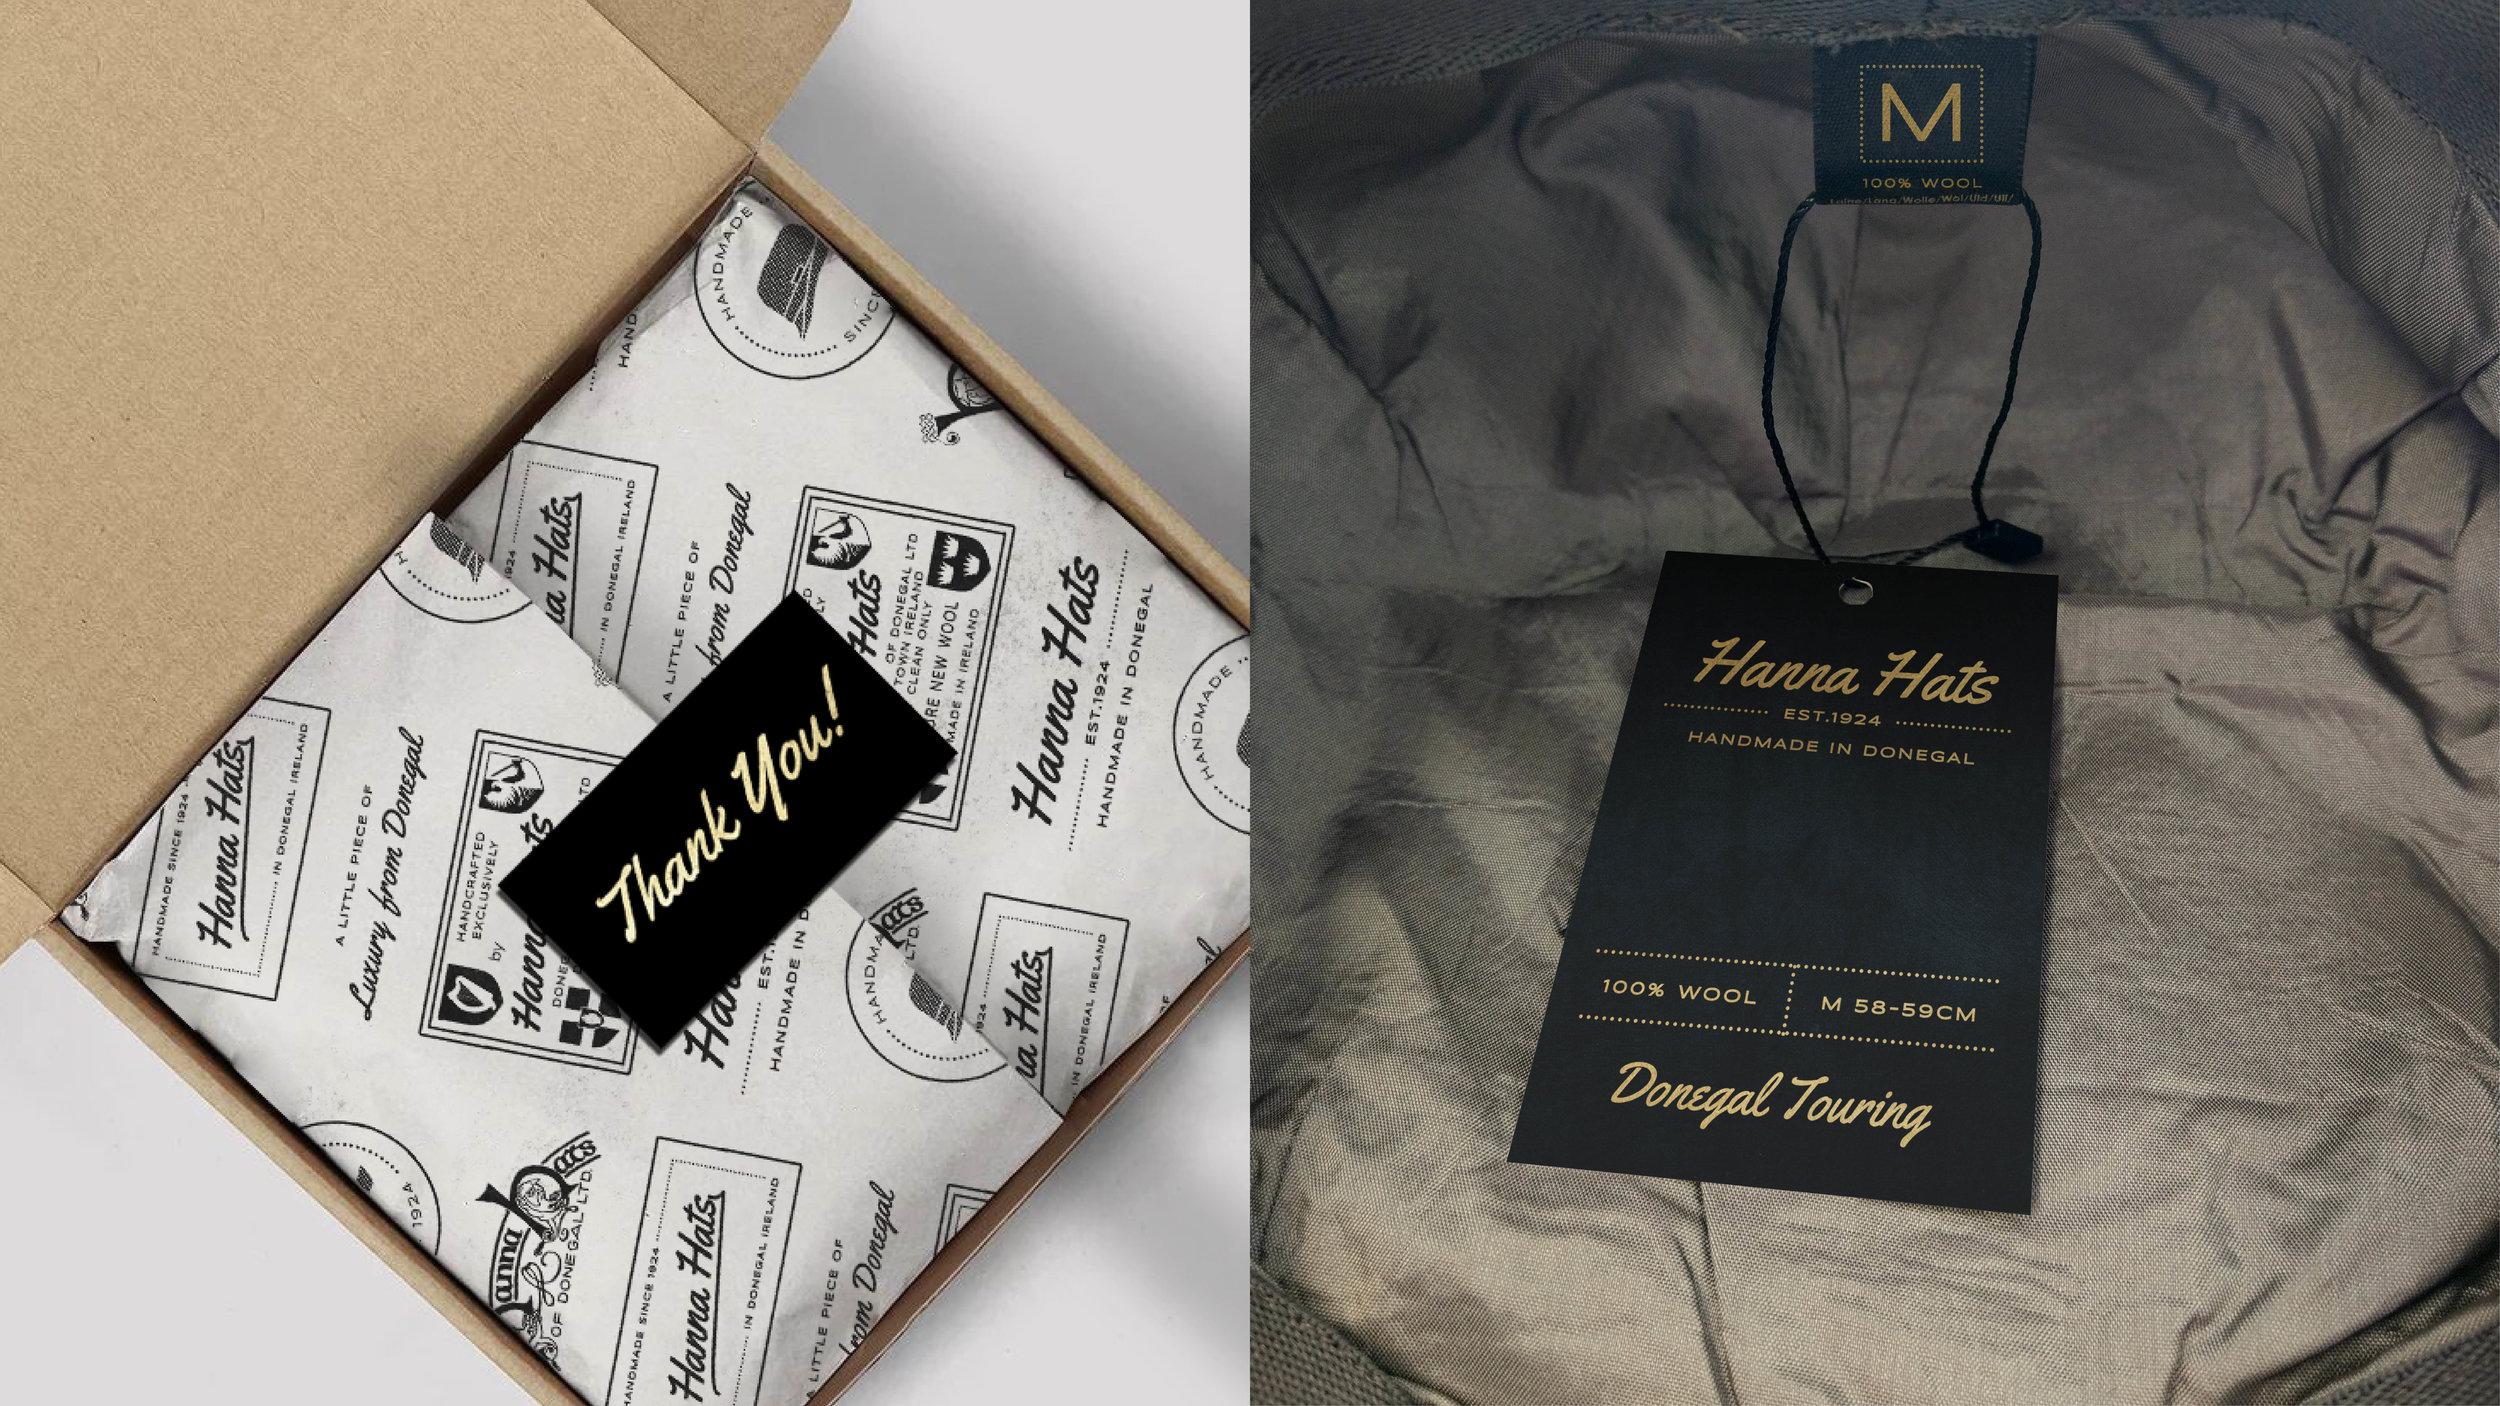 To match the matt black and gold packaging we would make the swing tags with the same inspiration to make sure there's a consistency throughout all your design.